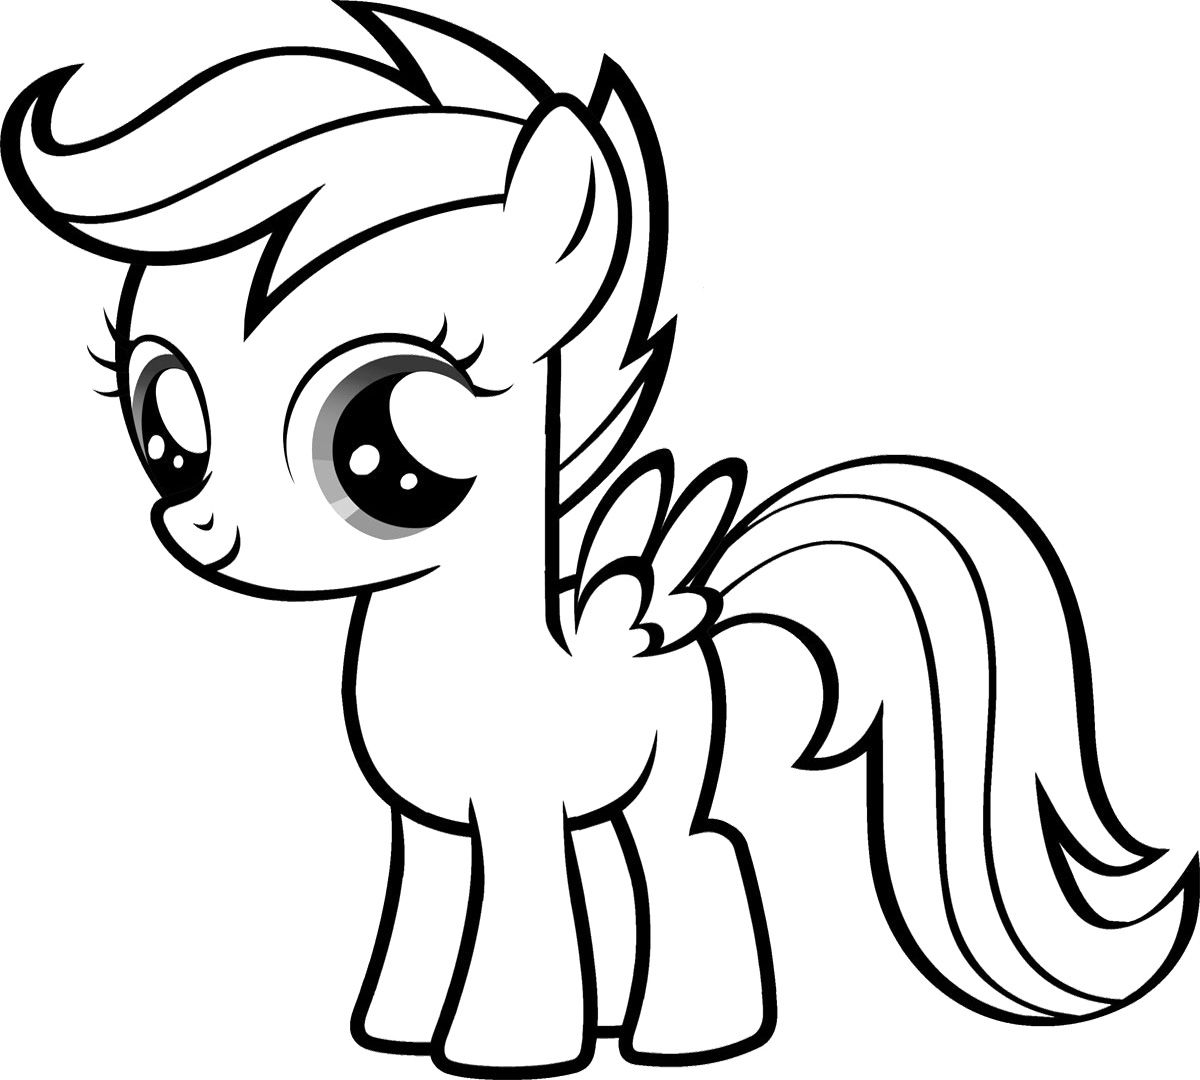 Uncategorized Baby My Little Pony Coloring Pages free coloring pages of blank pony my little 4th birthday baby colouring pages